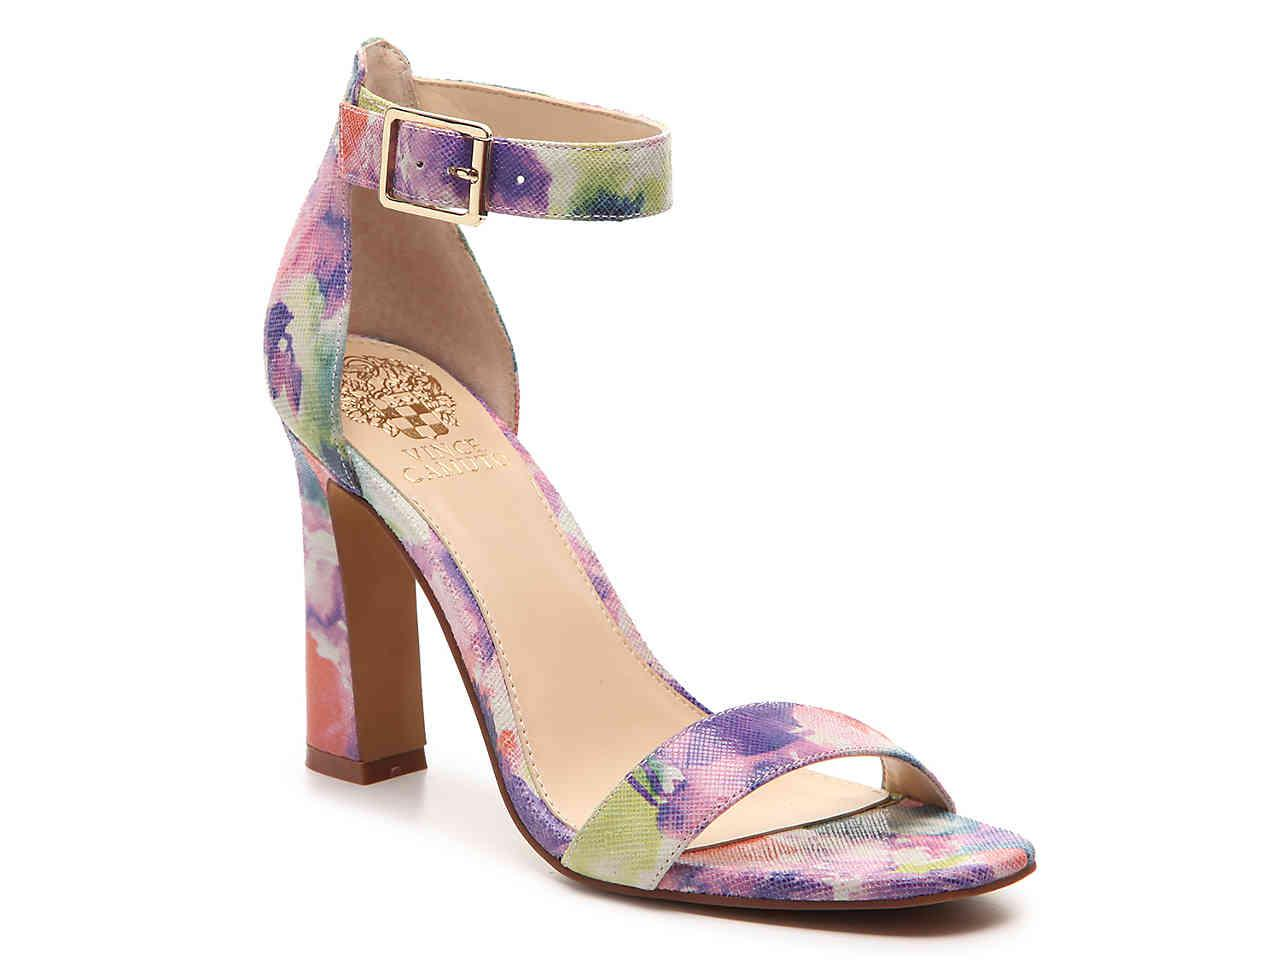 9235363e620 Lyst - Vince Camuto Acelyn Sandal in Purple